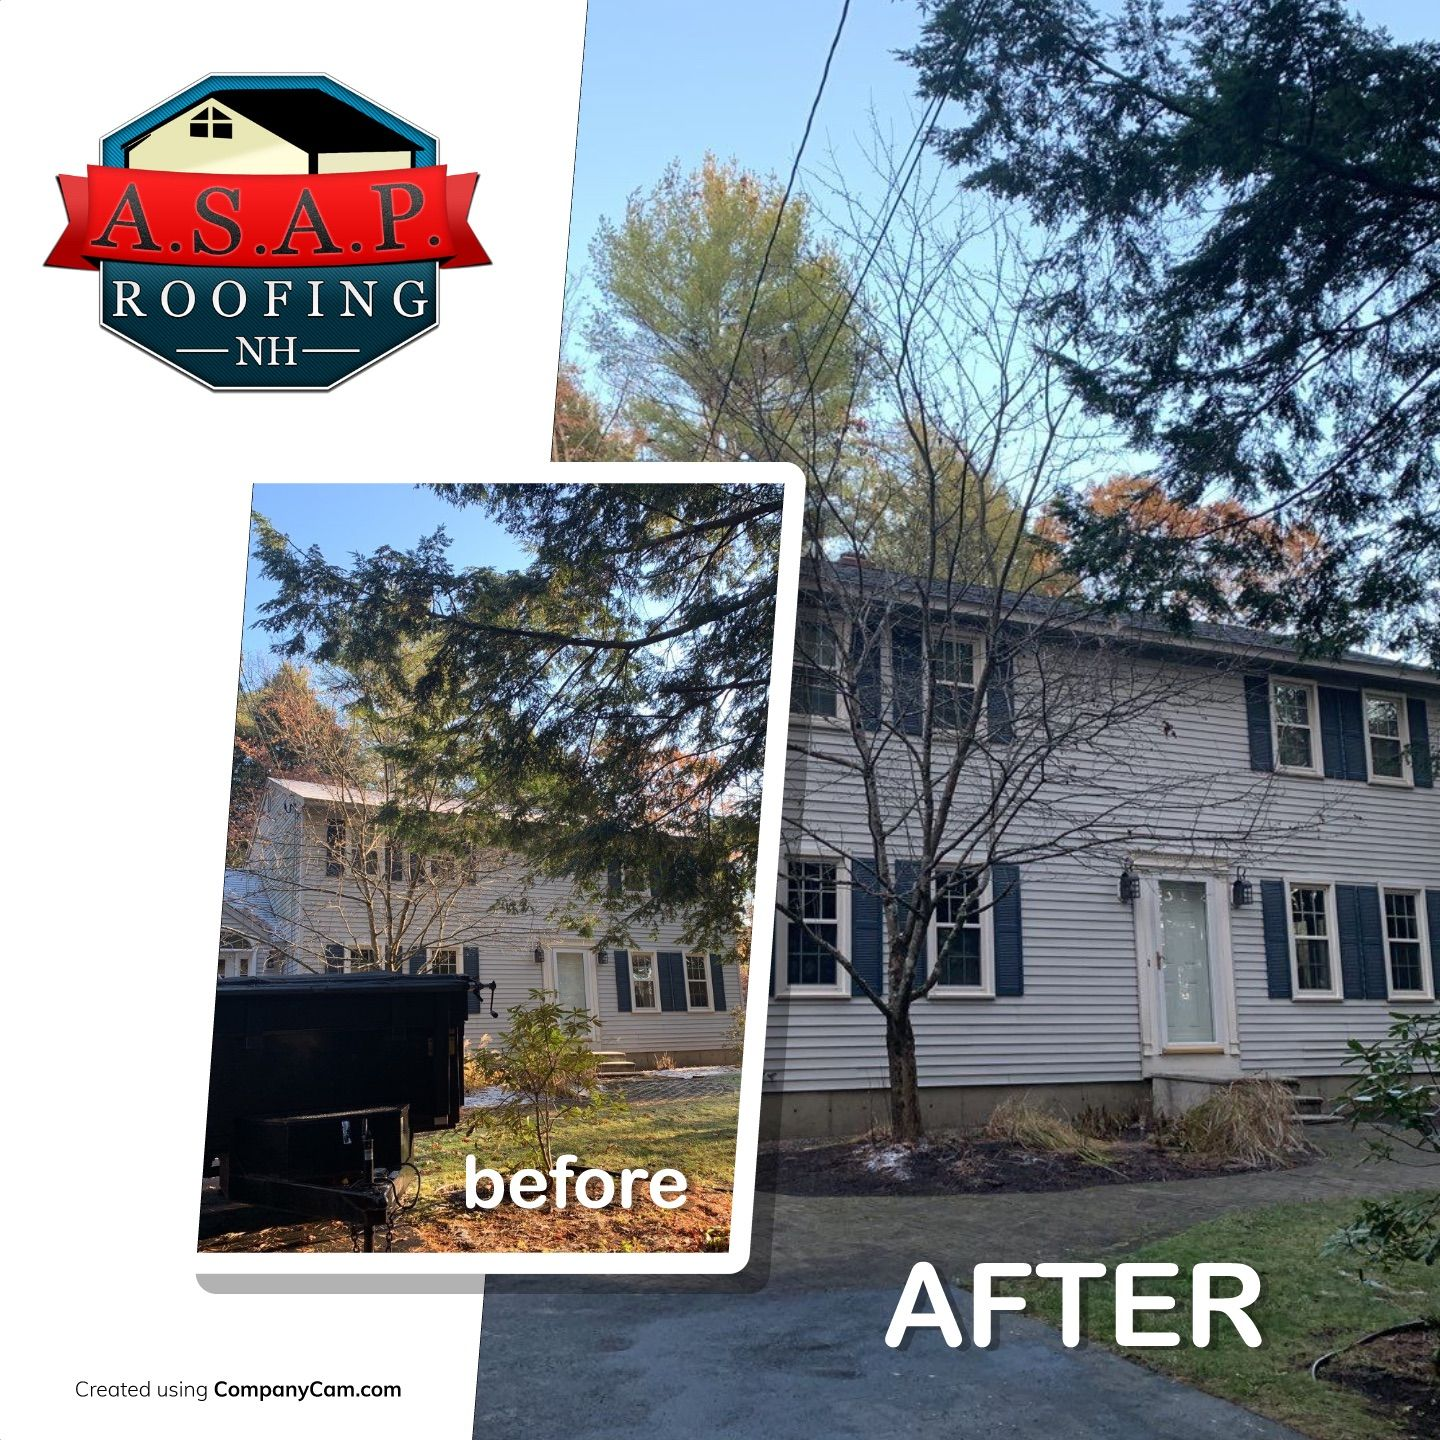 Professional Residential Roofing in Auburn NH by ASAP Roofing